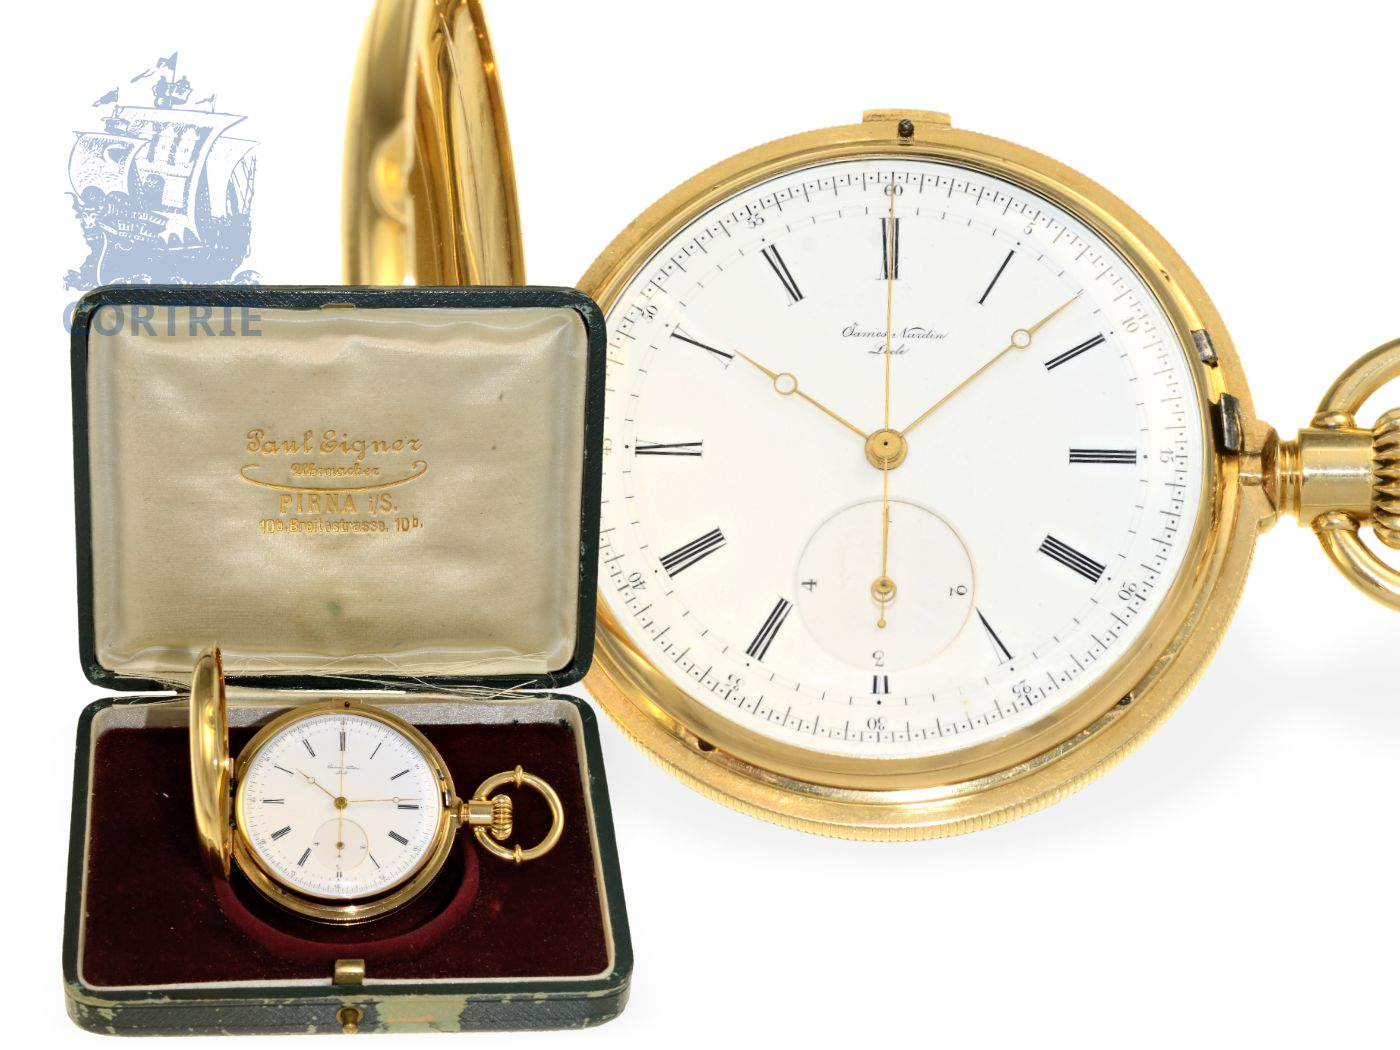 Pocket watch: very fine and rare James Nardin chronograph with rare double complication of Seconde Morte and stoppable flashing 1/4 seconds-